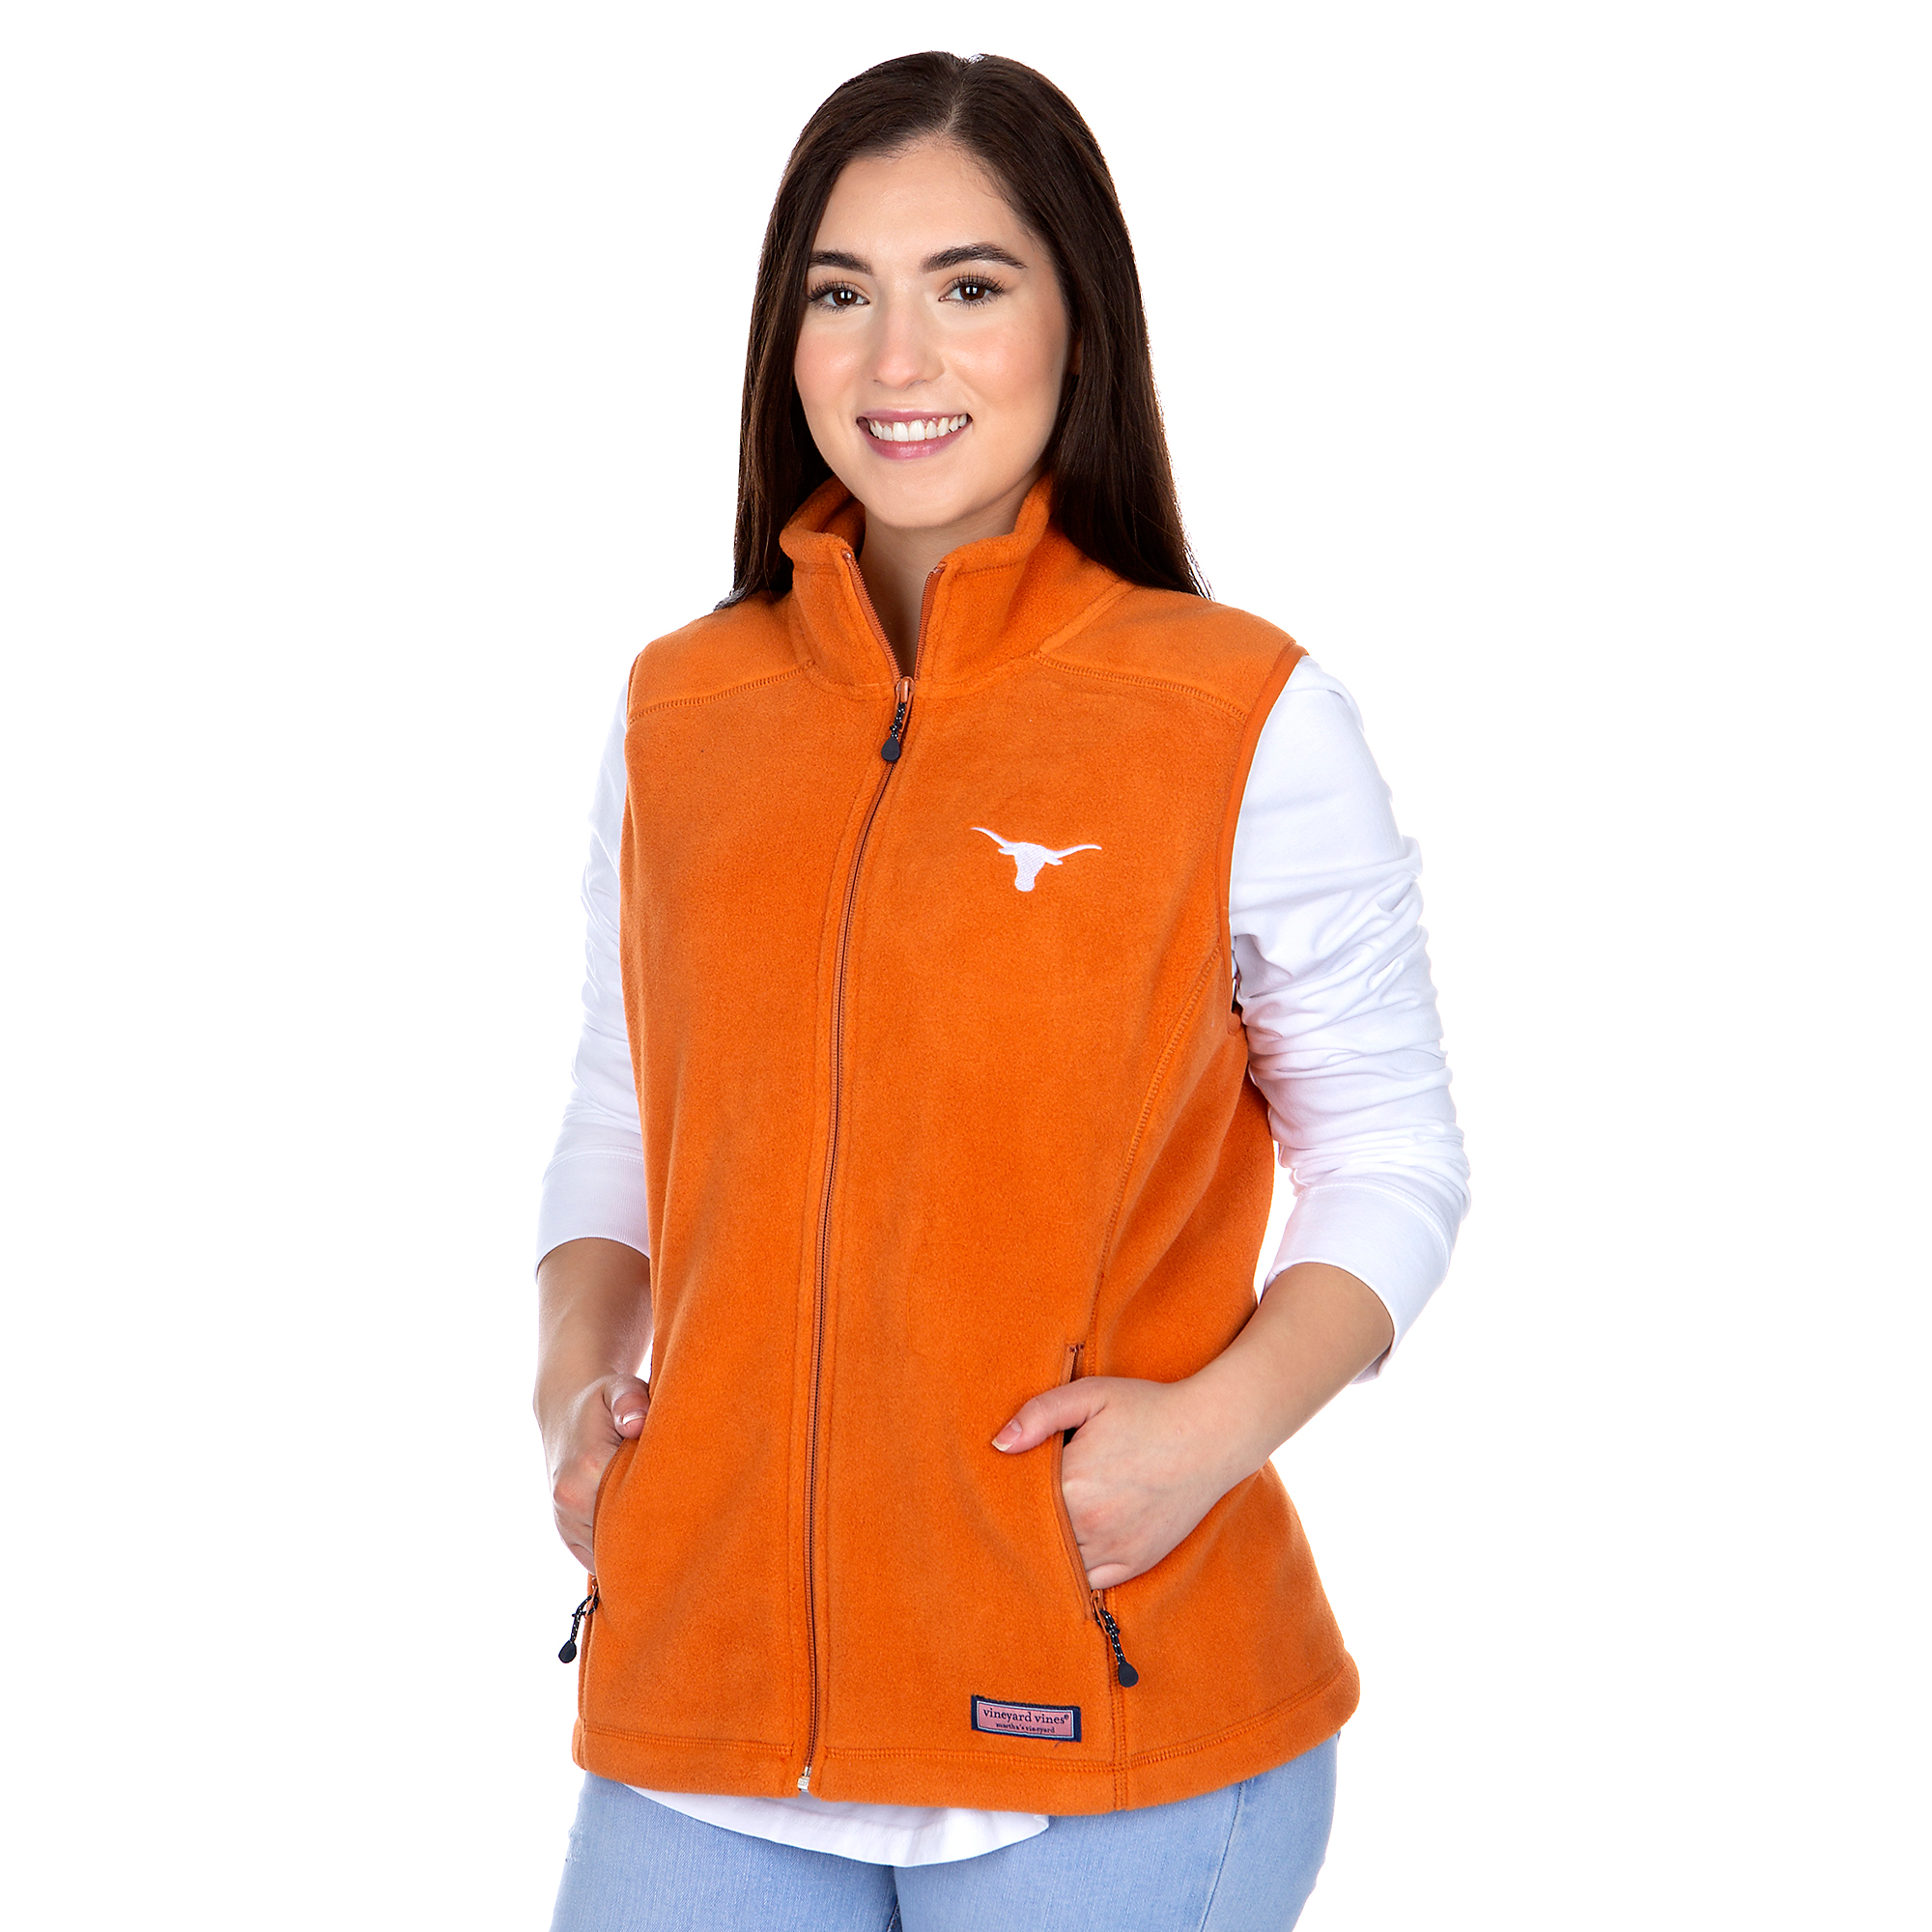 Texas Longhorns Womens Vineyard Vines Westerly Vest